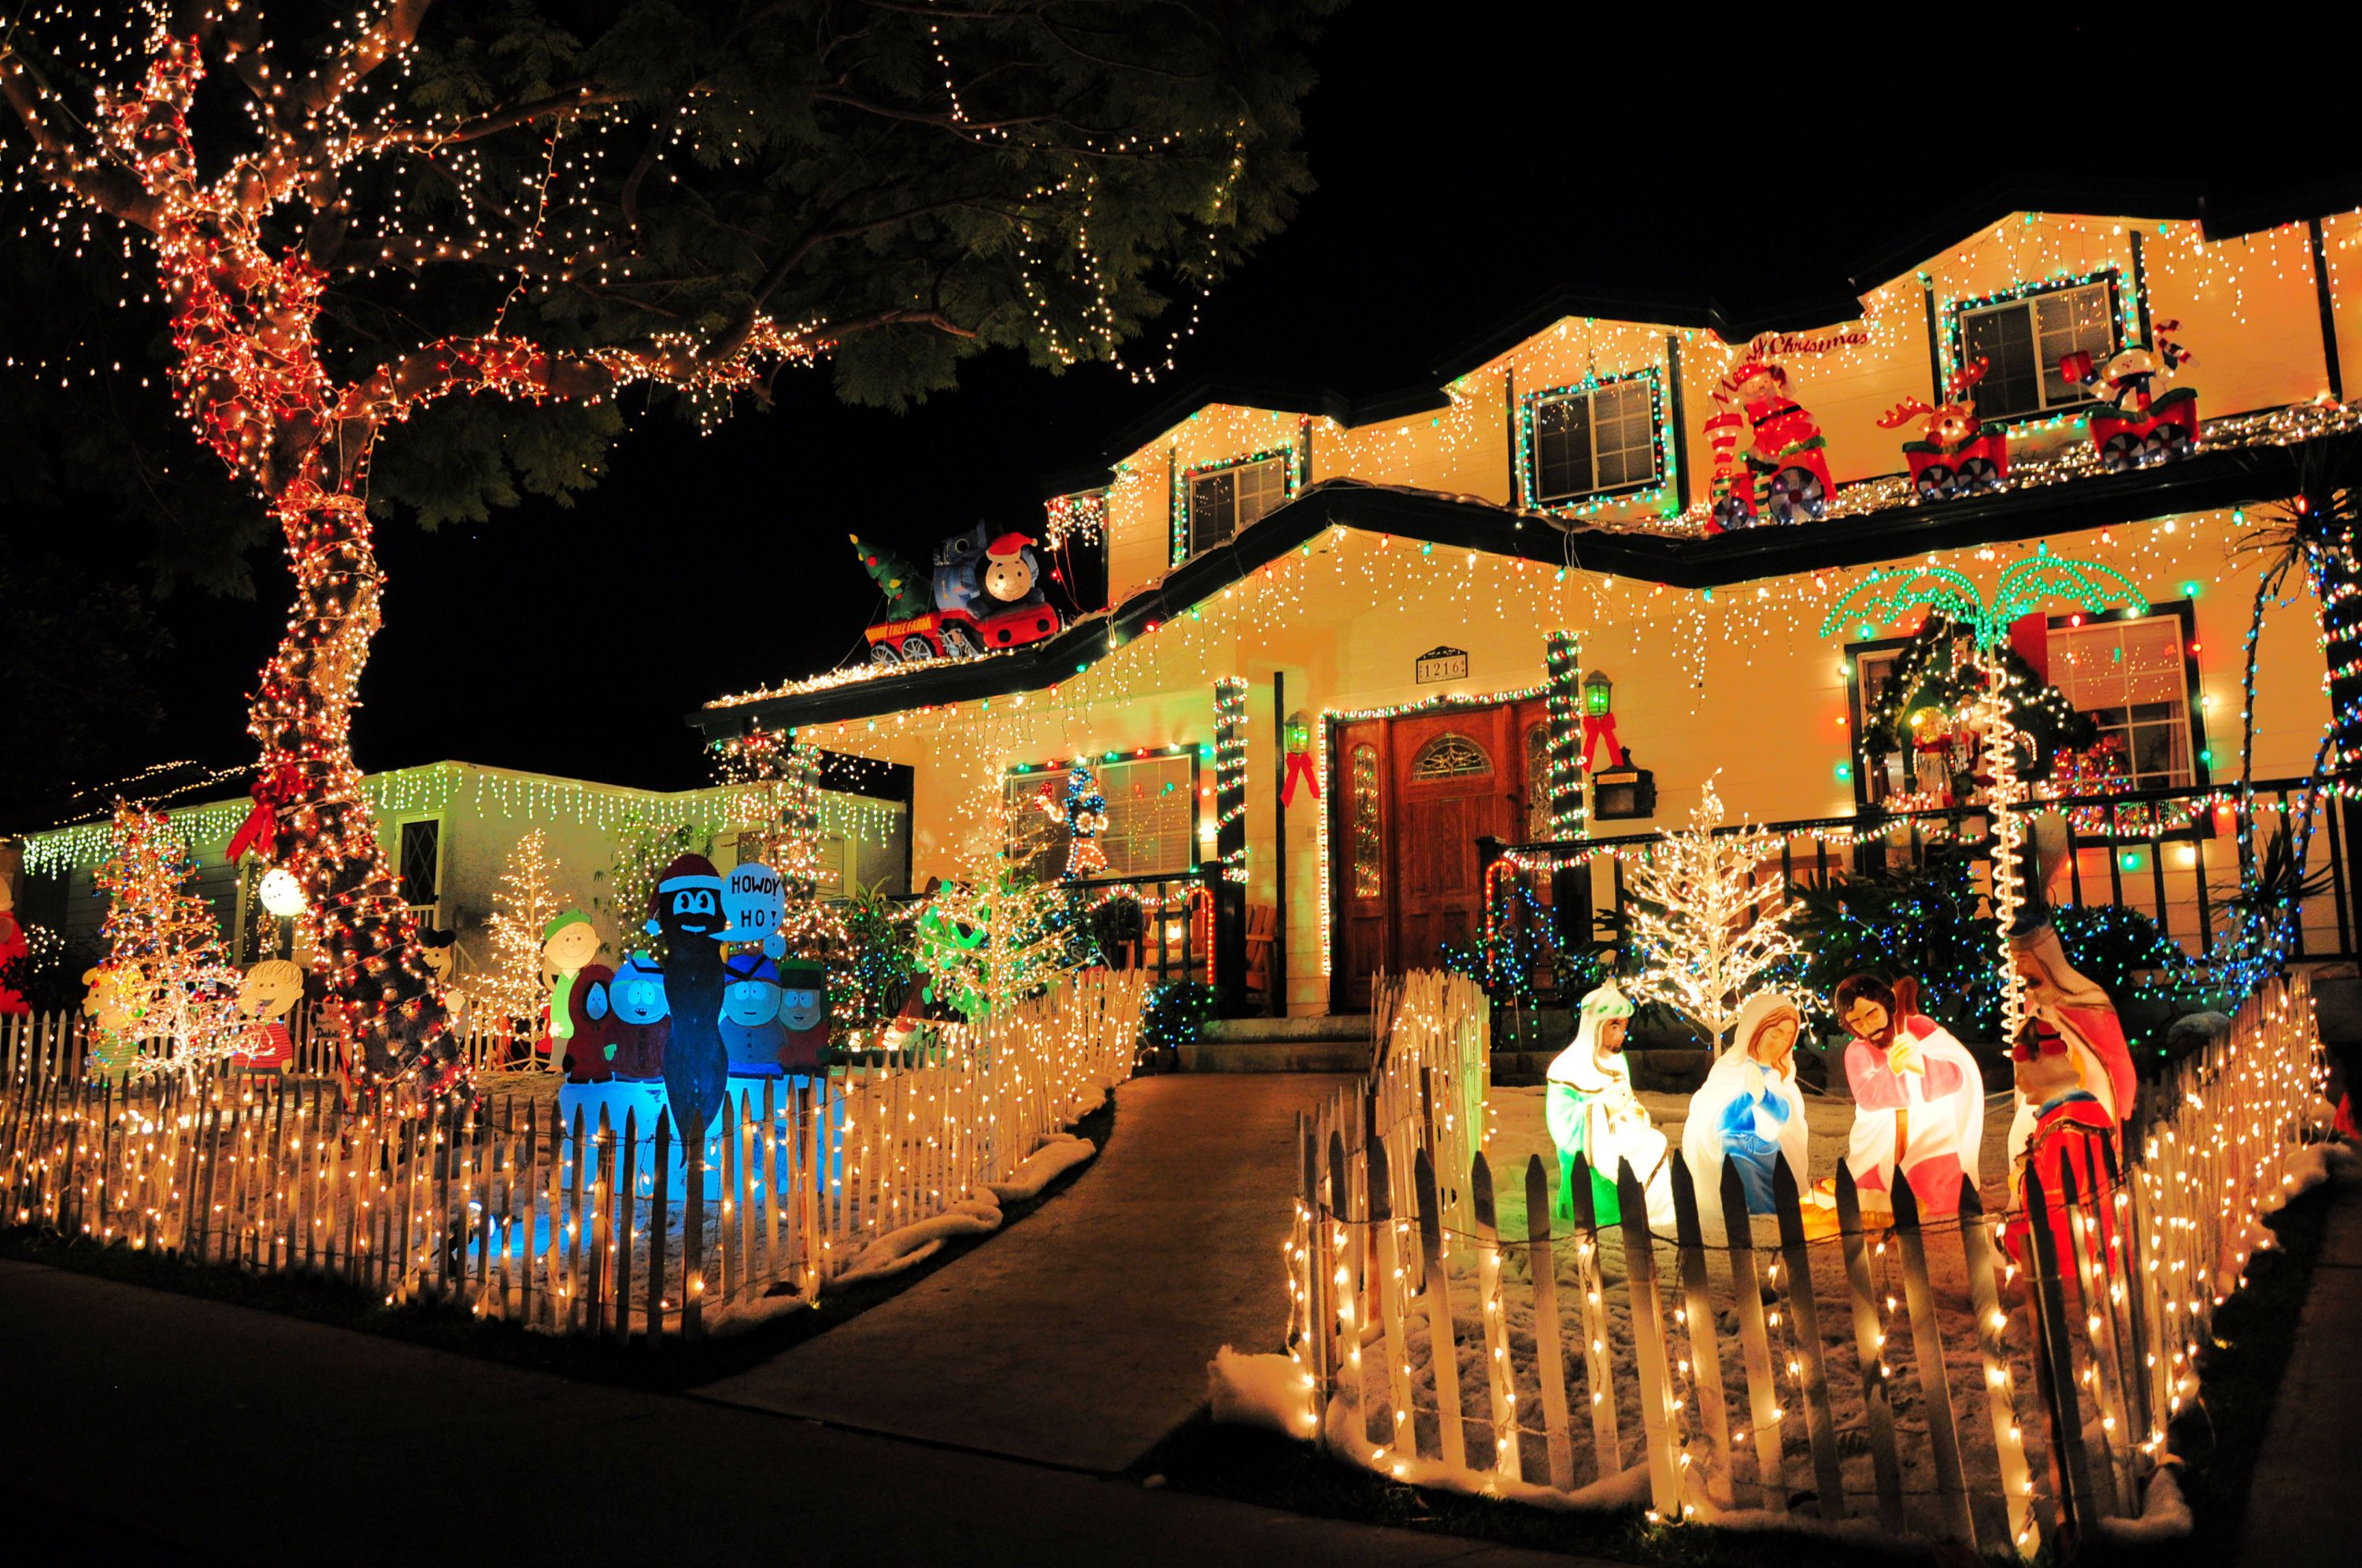 Best Christmas Light Displays And Home Holiday Decorations Around Los Angeles Mommy Poppins Things To Do With Kids Best Christmas Lights Christmas Lights Outdoor Christmas Light Displays